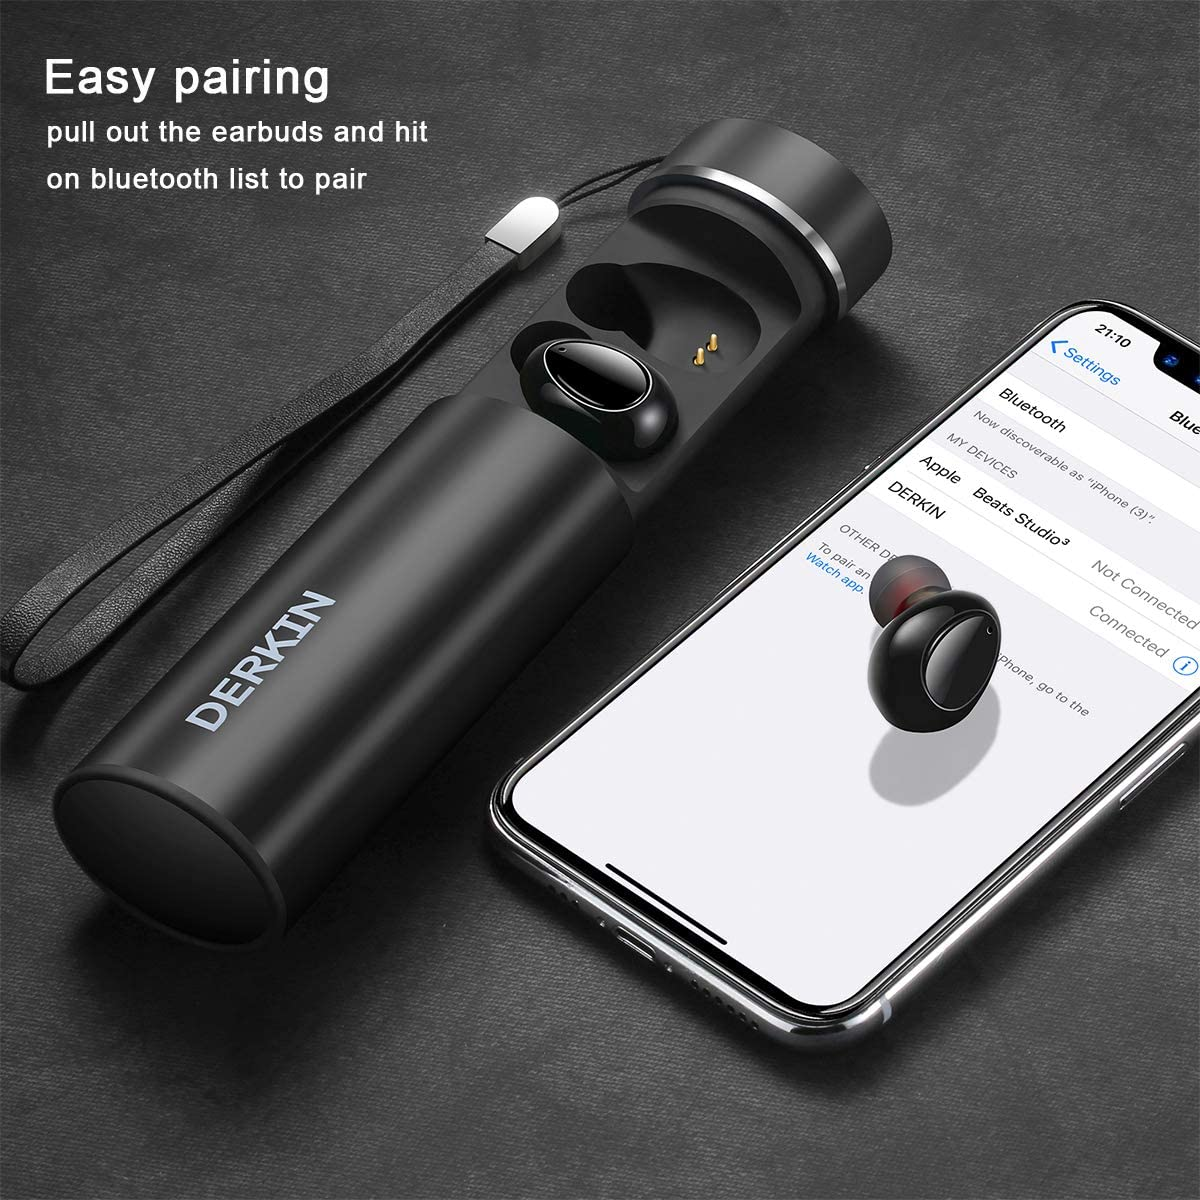 Workout Wireless Earbuds, Derkin TWS X7 Best Bluetooth 5.0 Headphones 3D Stereo 16H Playtime Sweatproof Earphones Built-in Dual Mic,Noise Cancelling Wireless Headphones for Sport